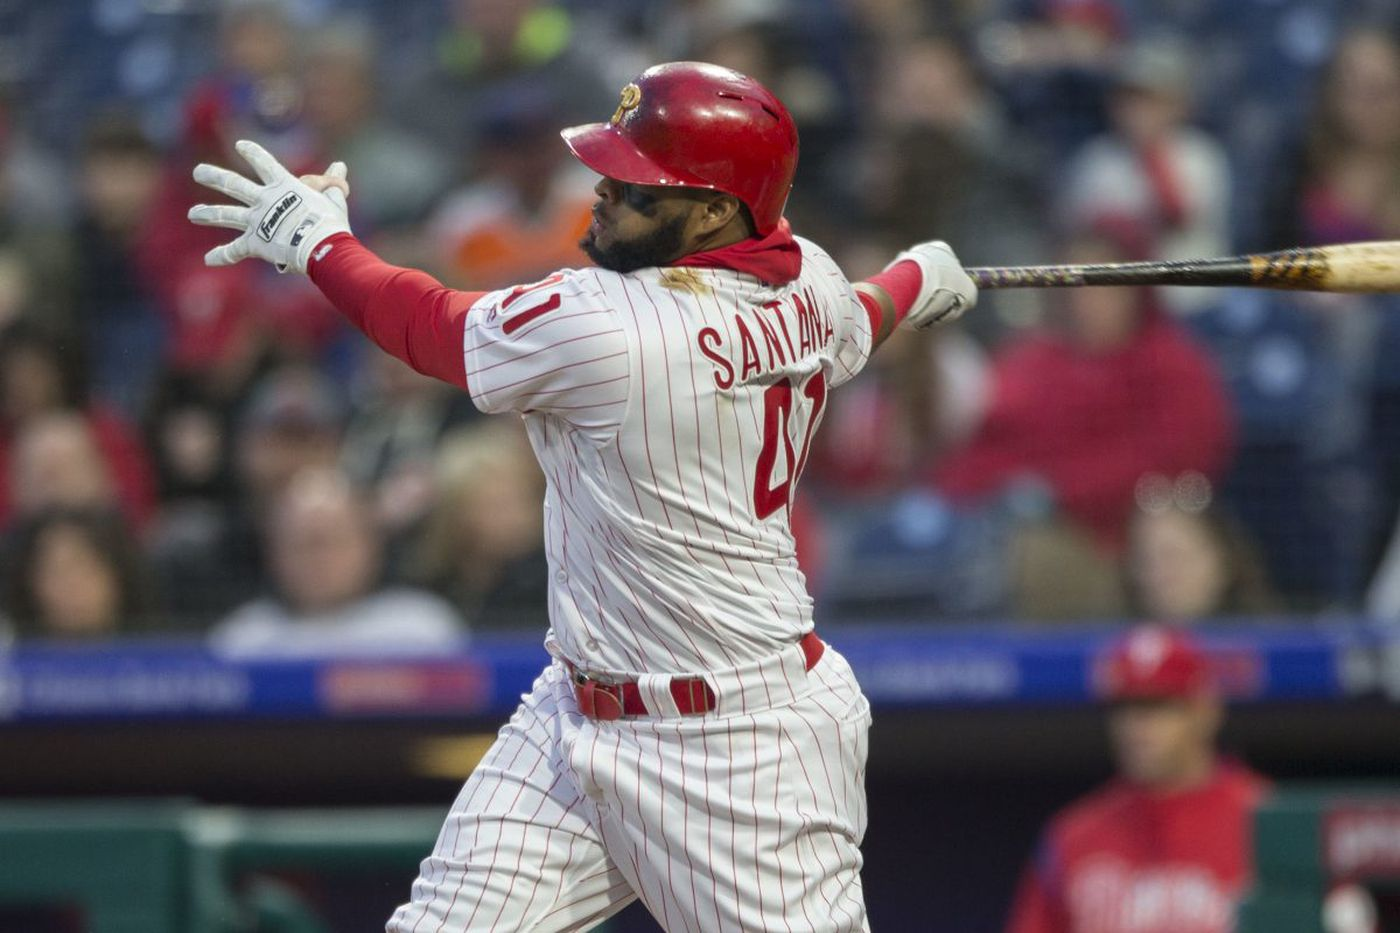 Phillies first baseman Carlos Santana tends to heat up with the weather